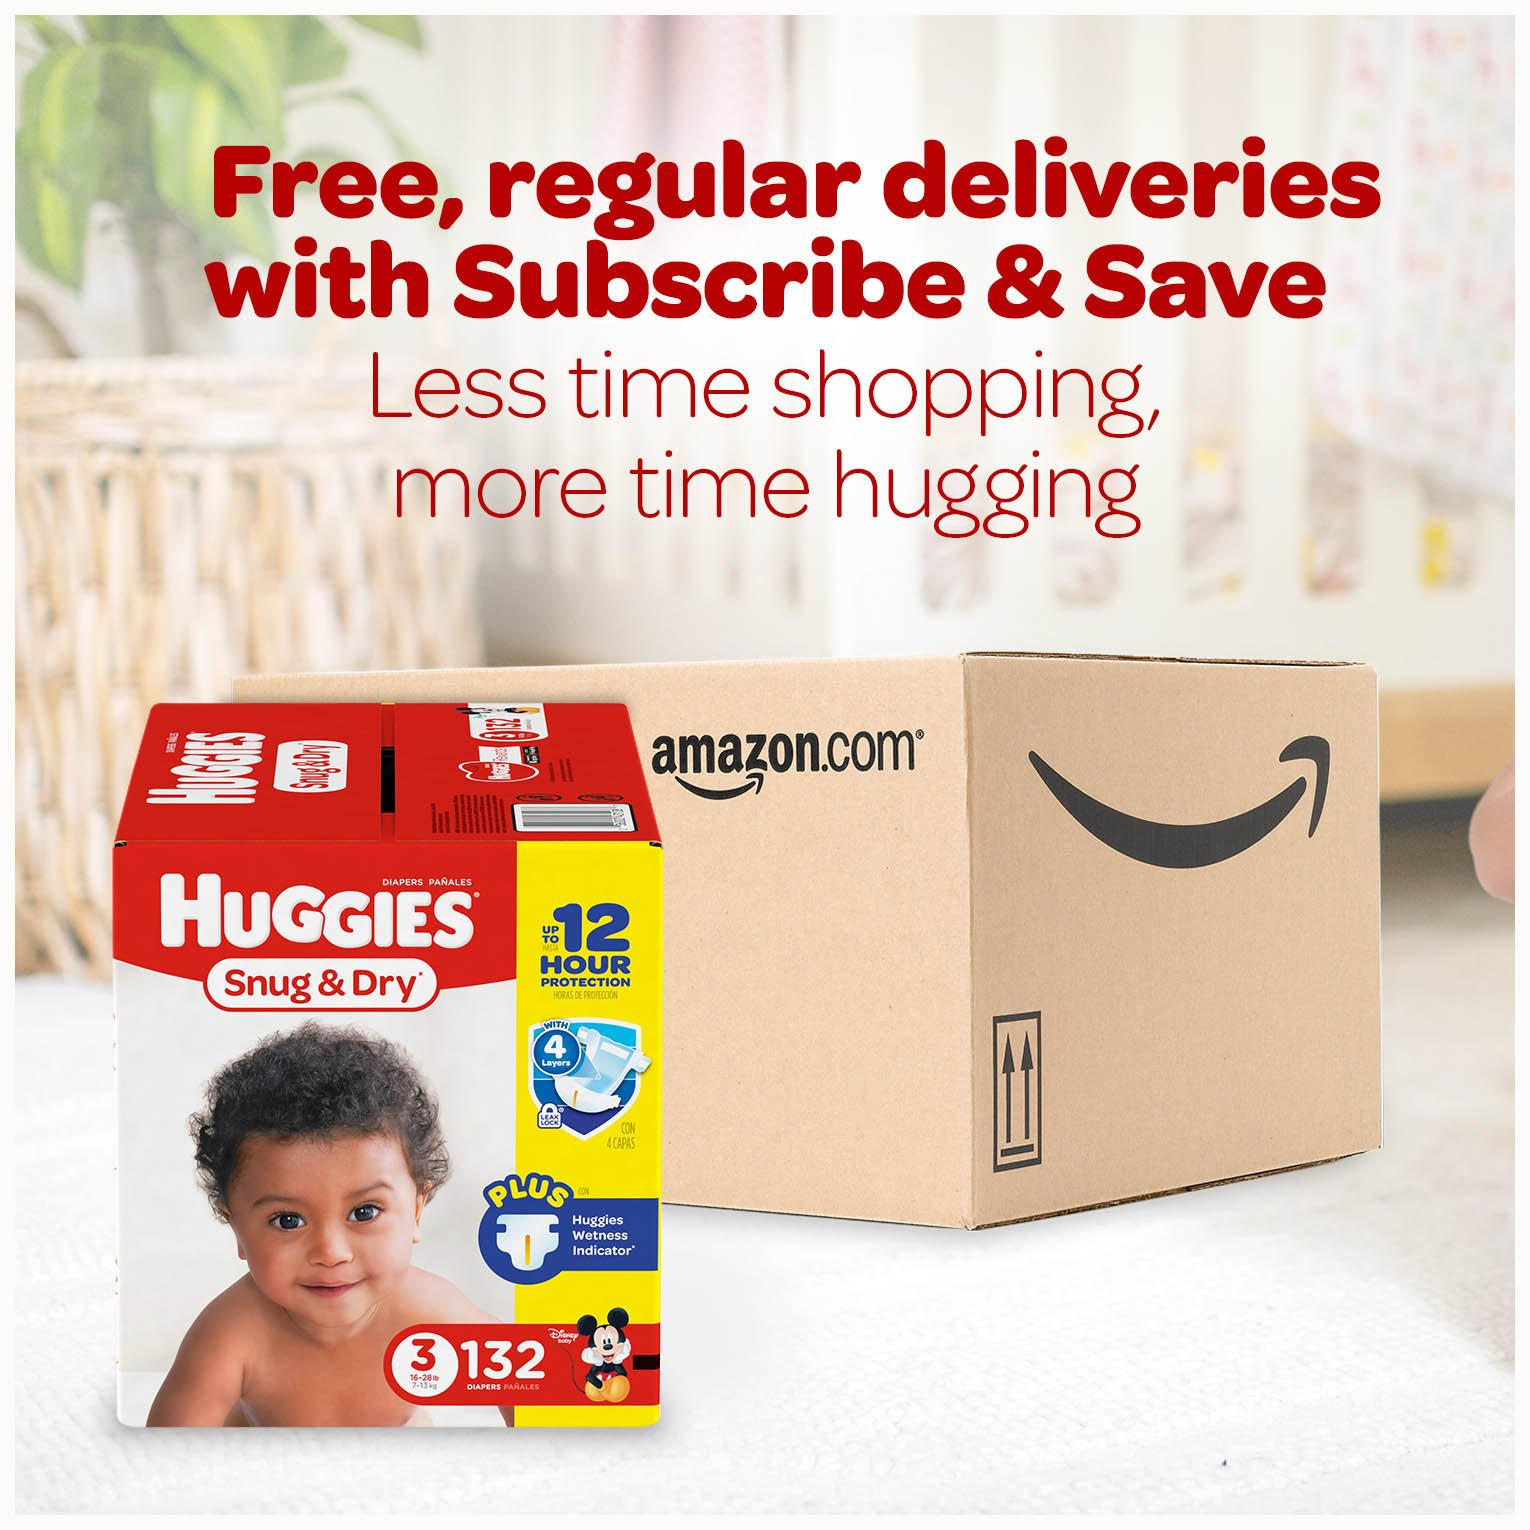 HUGGIES Snug & Dry Diapers, Size 5, 172 Count (Packaging May Vary) by Huggies (Image #11)